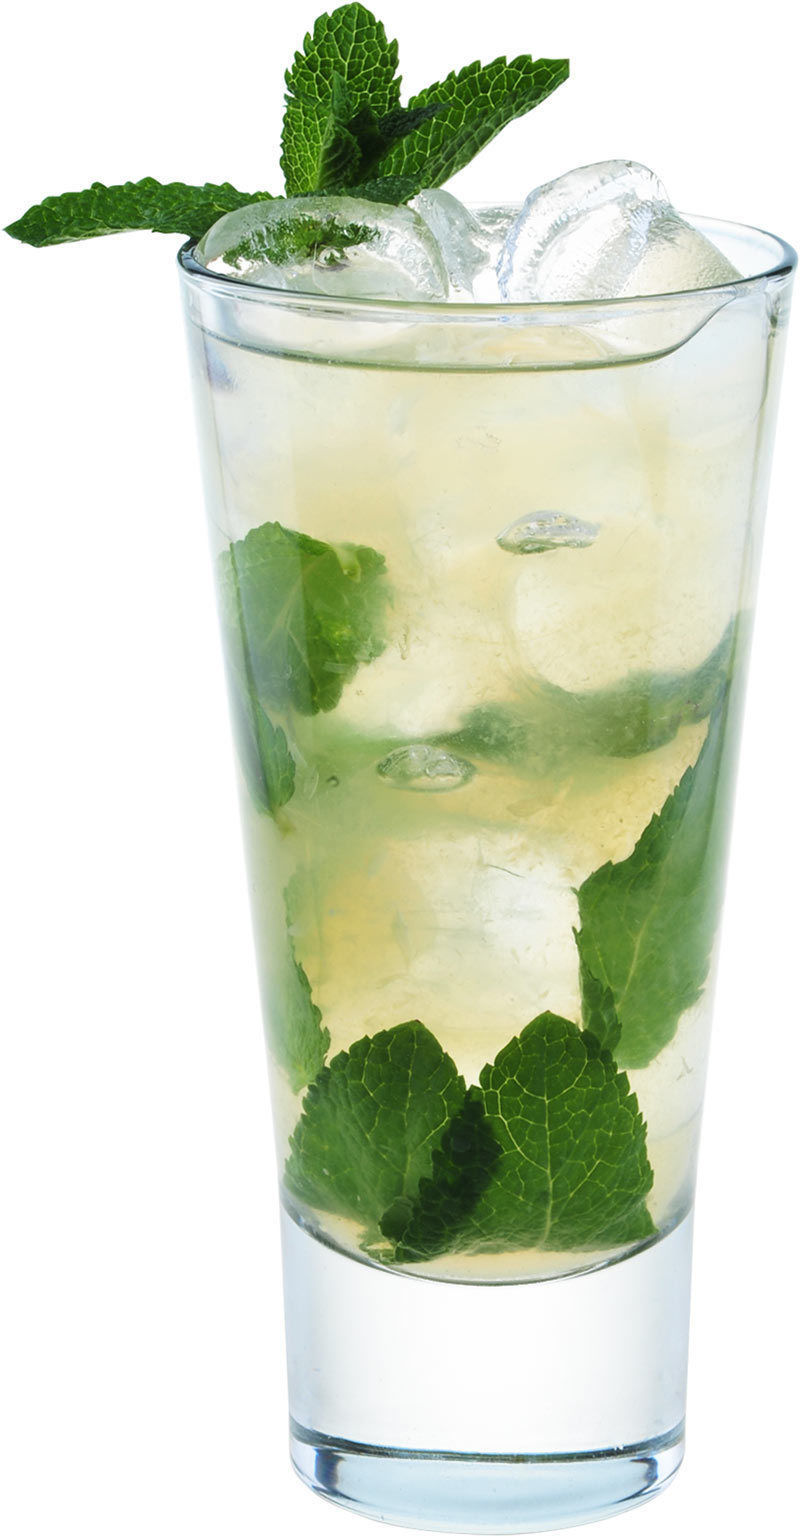 How to Make the Vodka with Mint Tea